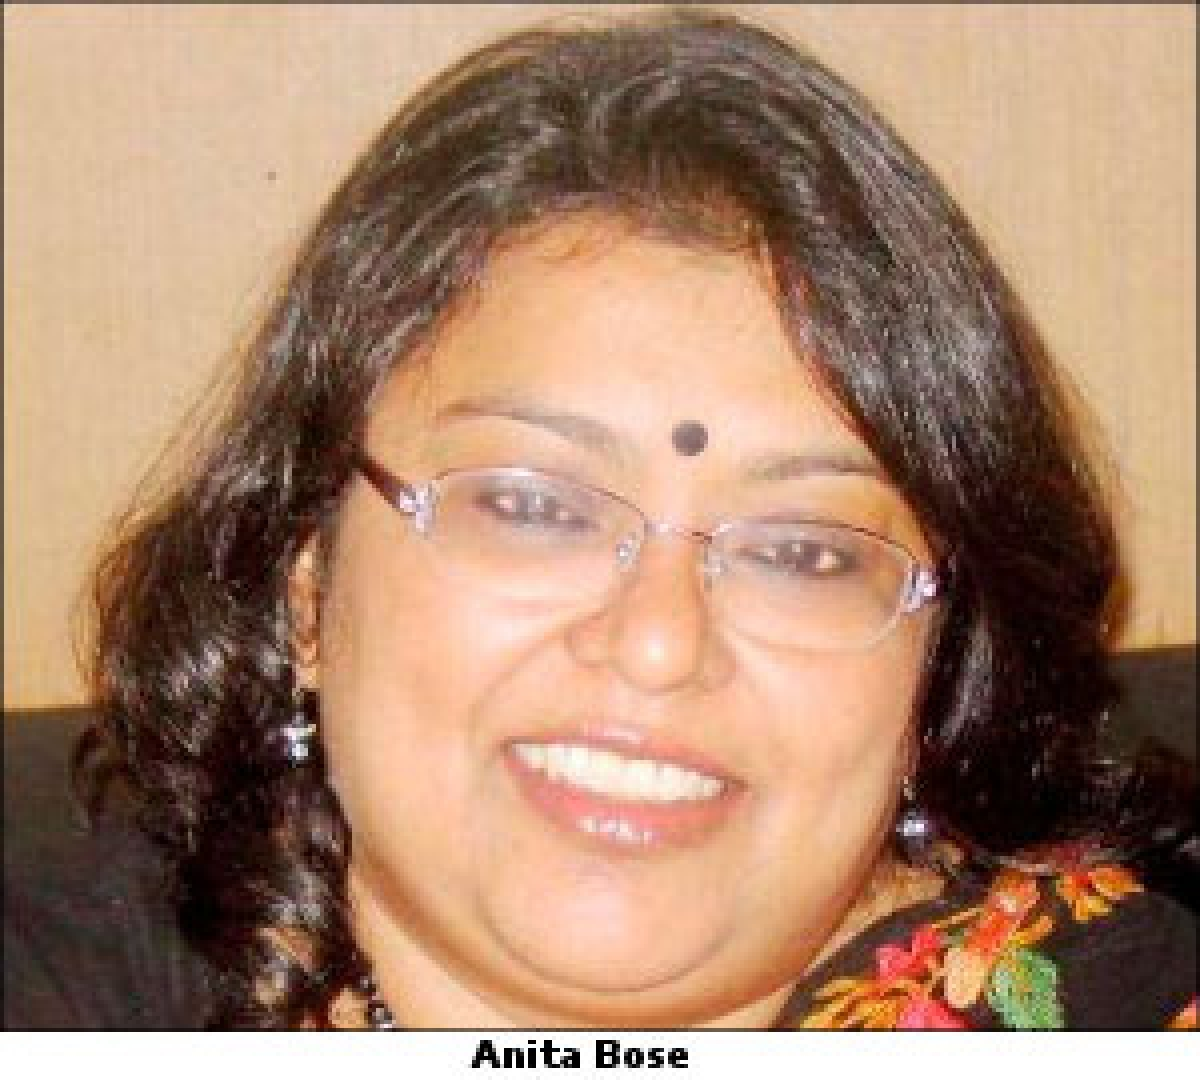 Madison Media Plus appoints Anita Bose as chief operating officer